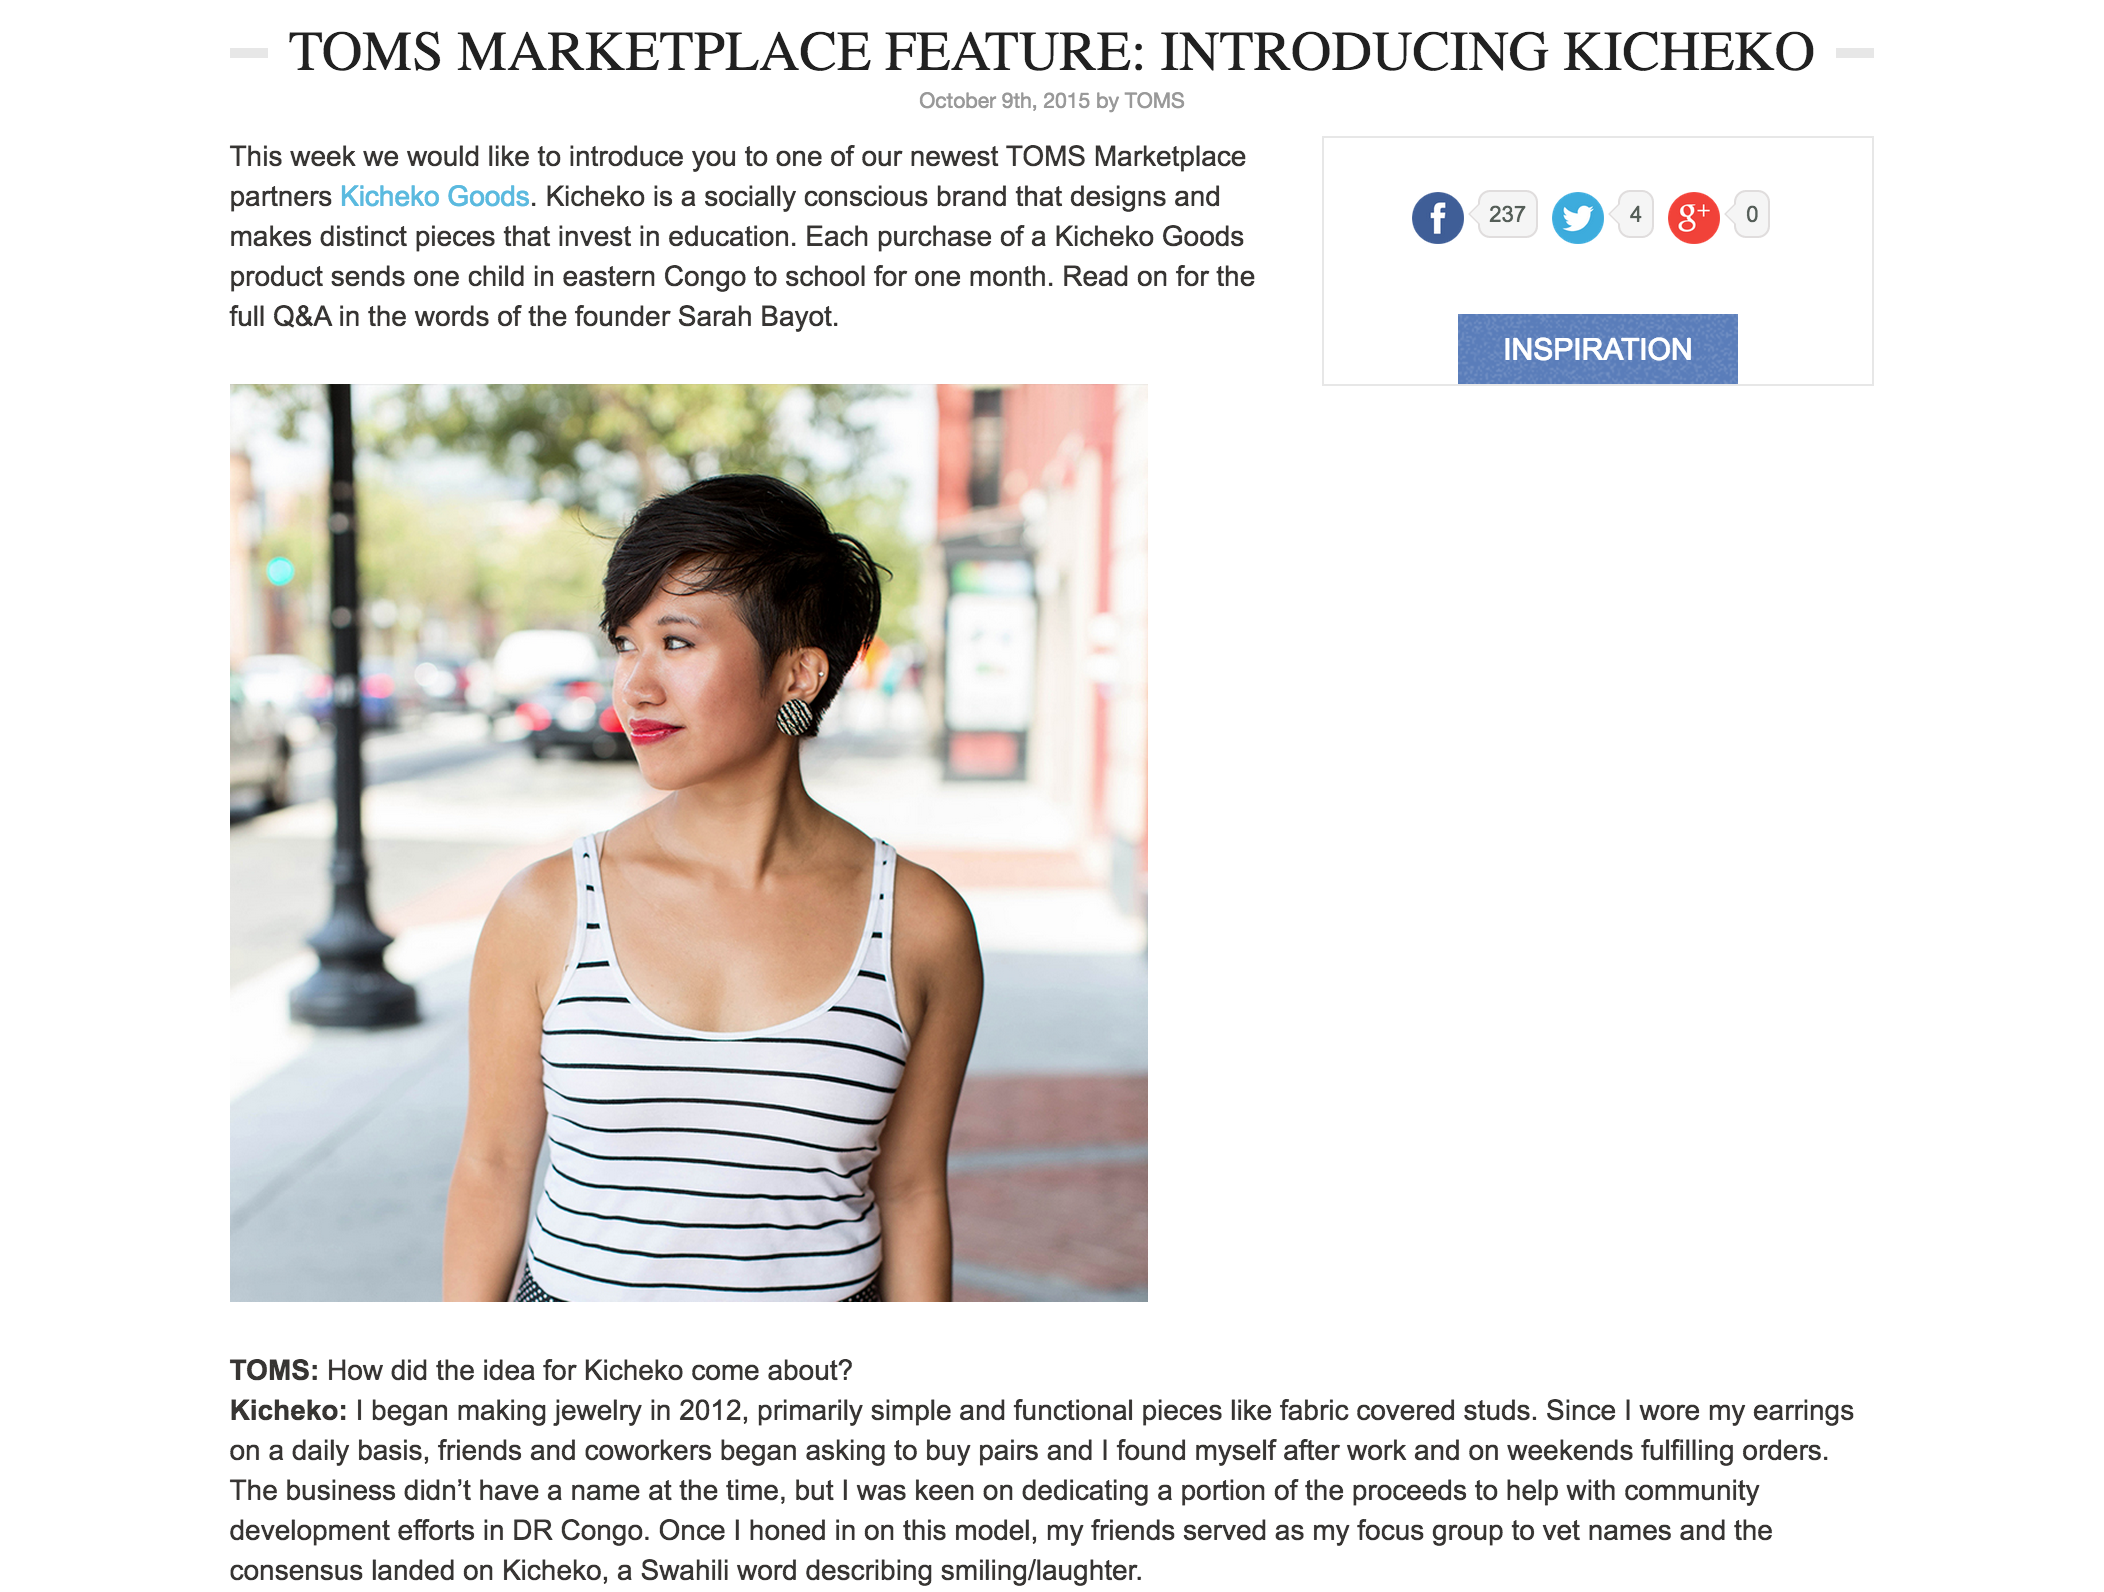 10.9 TOMS Story Blog Feature Introducing Kicheko Goods to the TOMS Marketplace